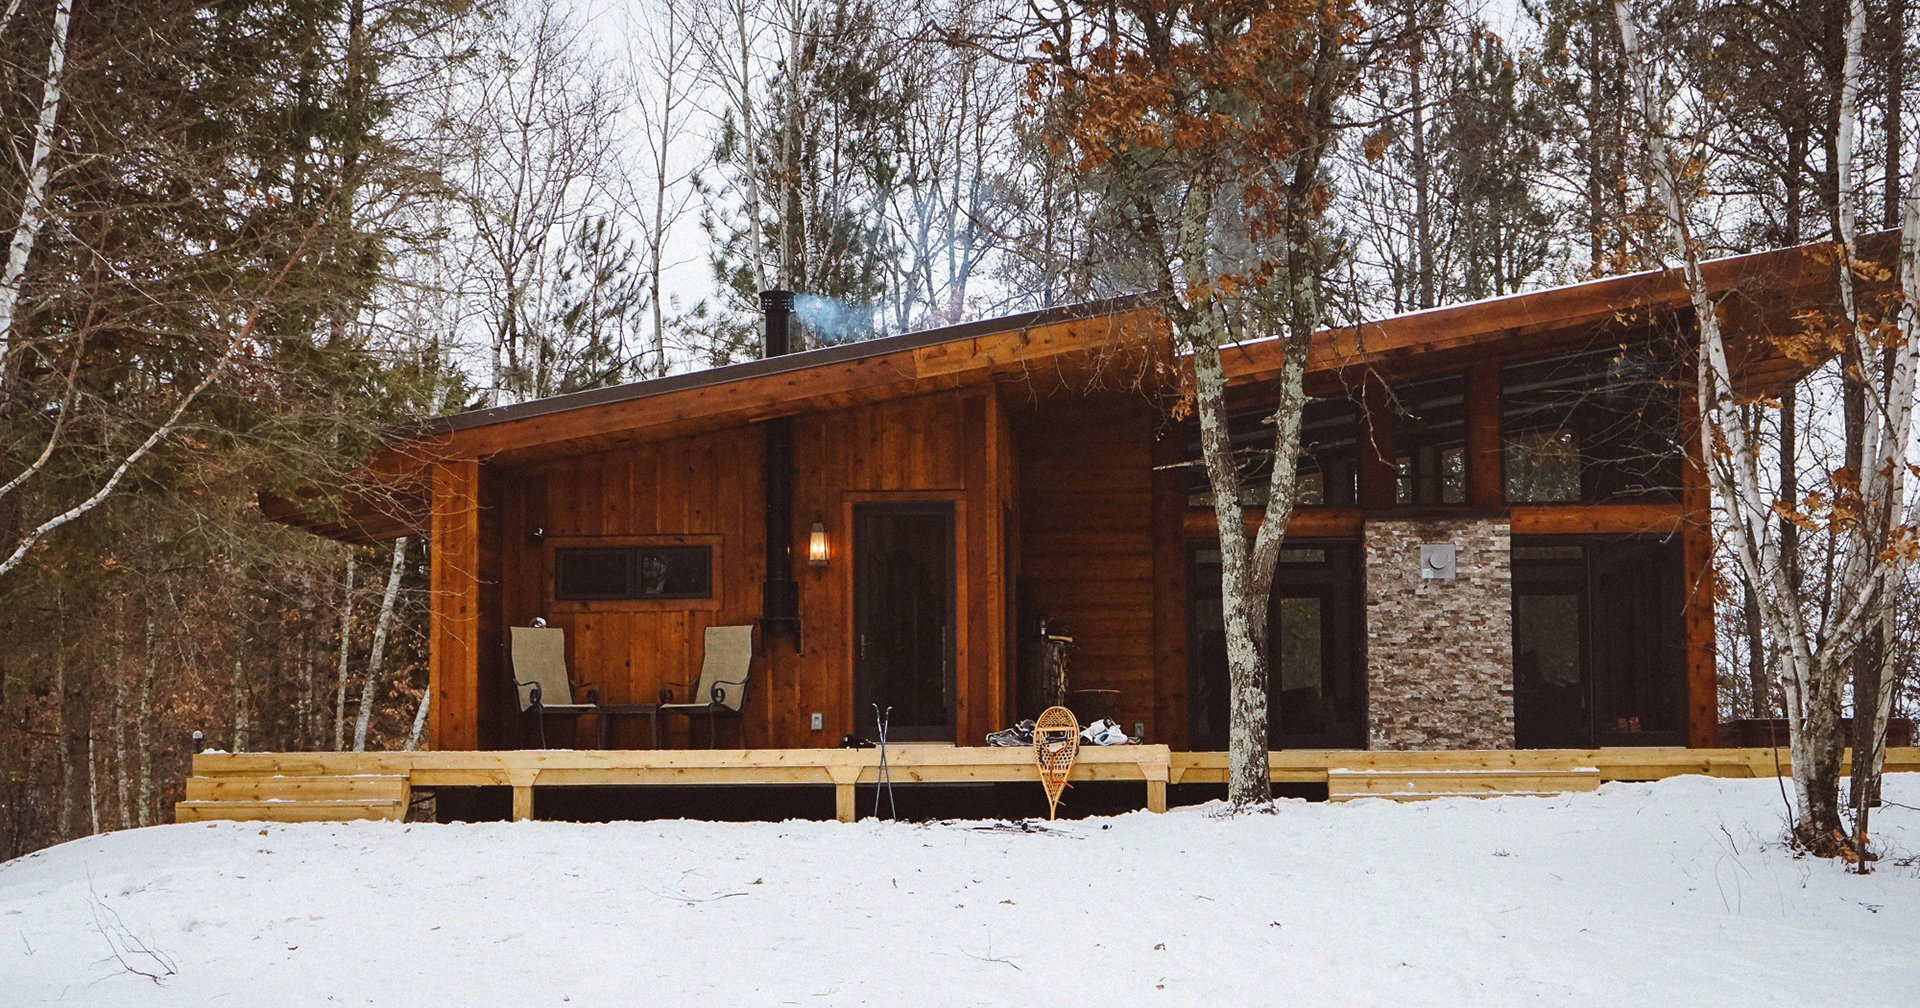 Log cabin in the woods winter - By Alex Lauer